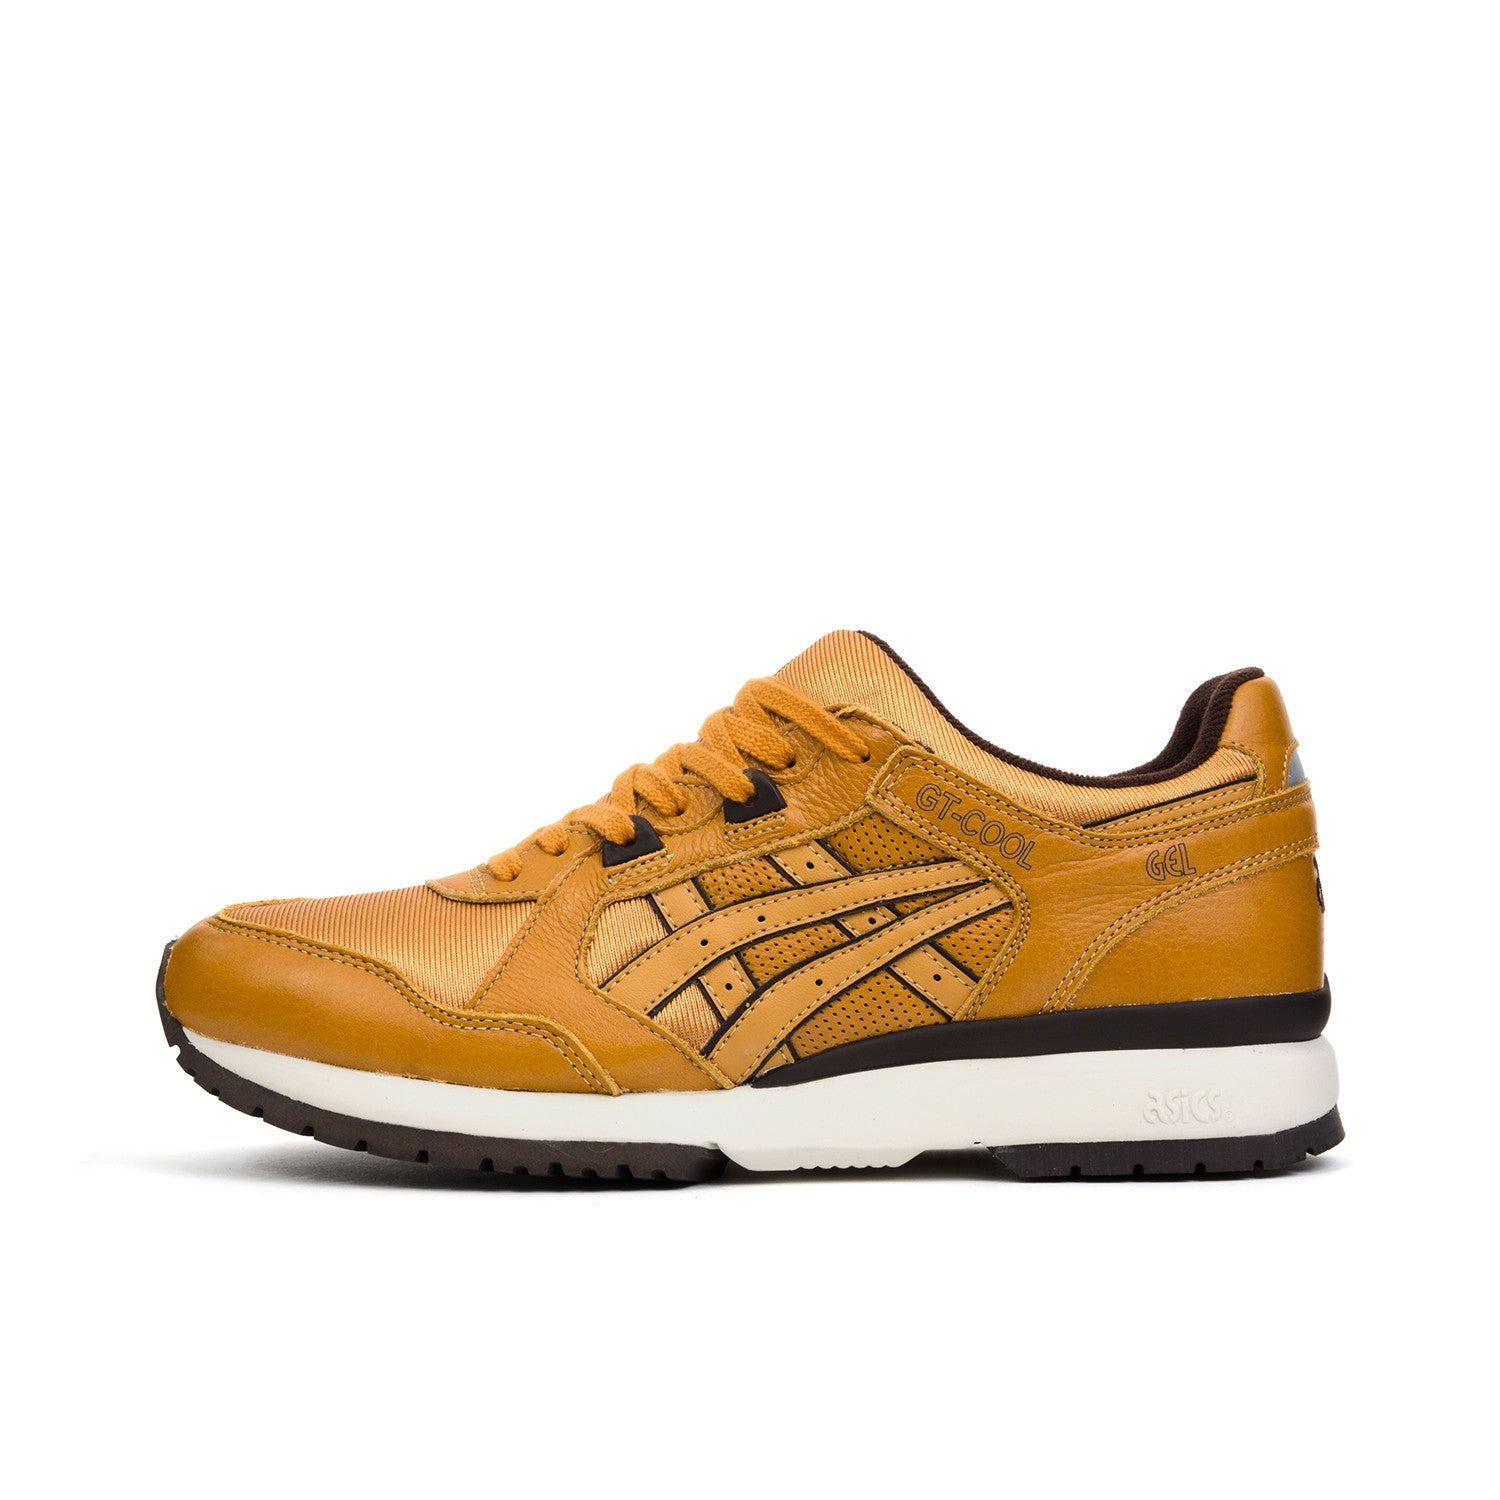 official photos cb5a8 b8bda AS15102 Asics GT-Cool Tan Tan.jpg v 1468785883